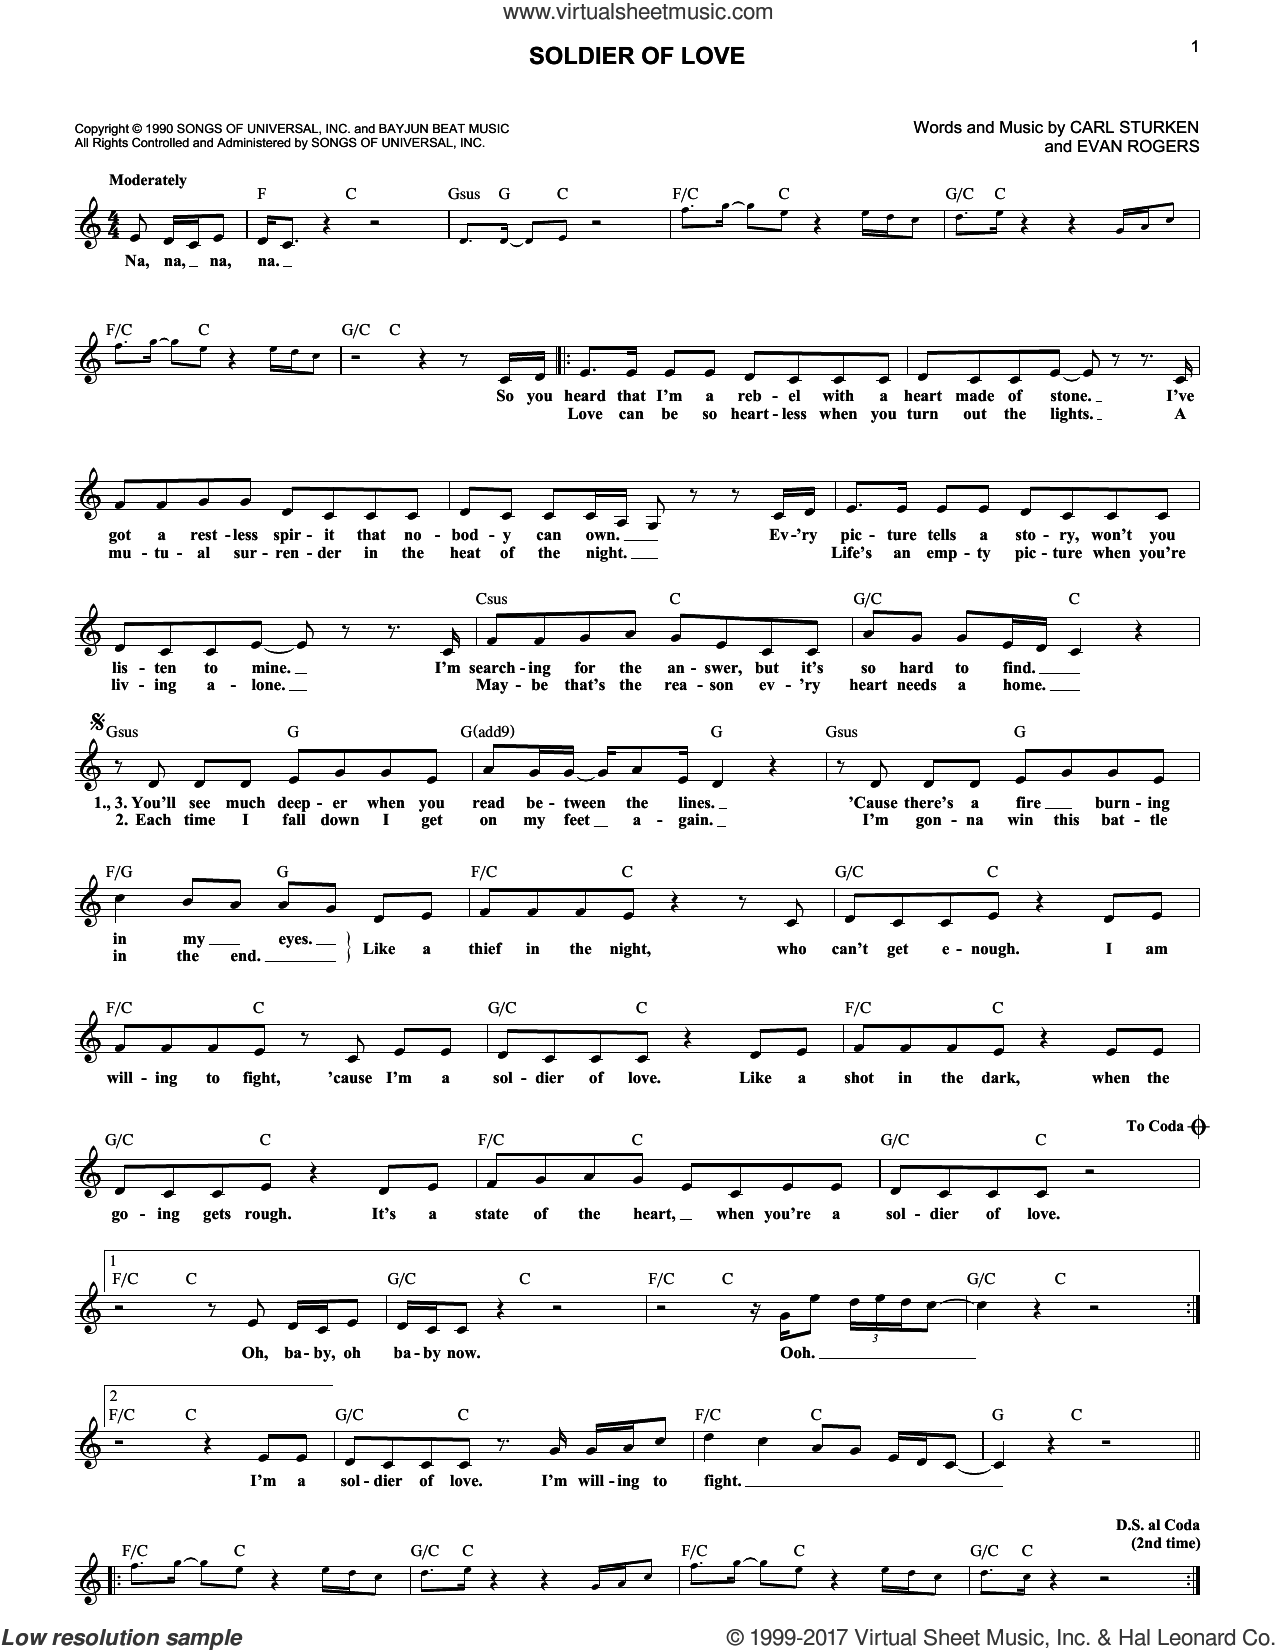 Soldier Of Love sheet music for voice and other instruments (fake book) by Donny Osmond, Carl Sturken and Evan Rogers, intermediate skill level